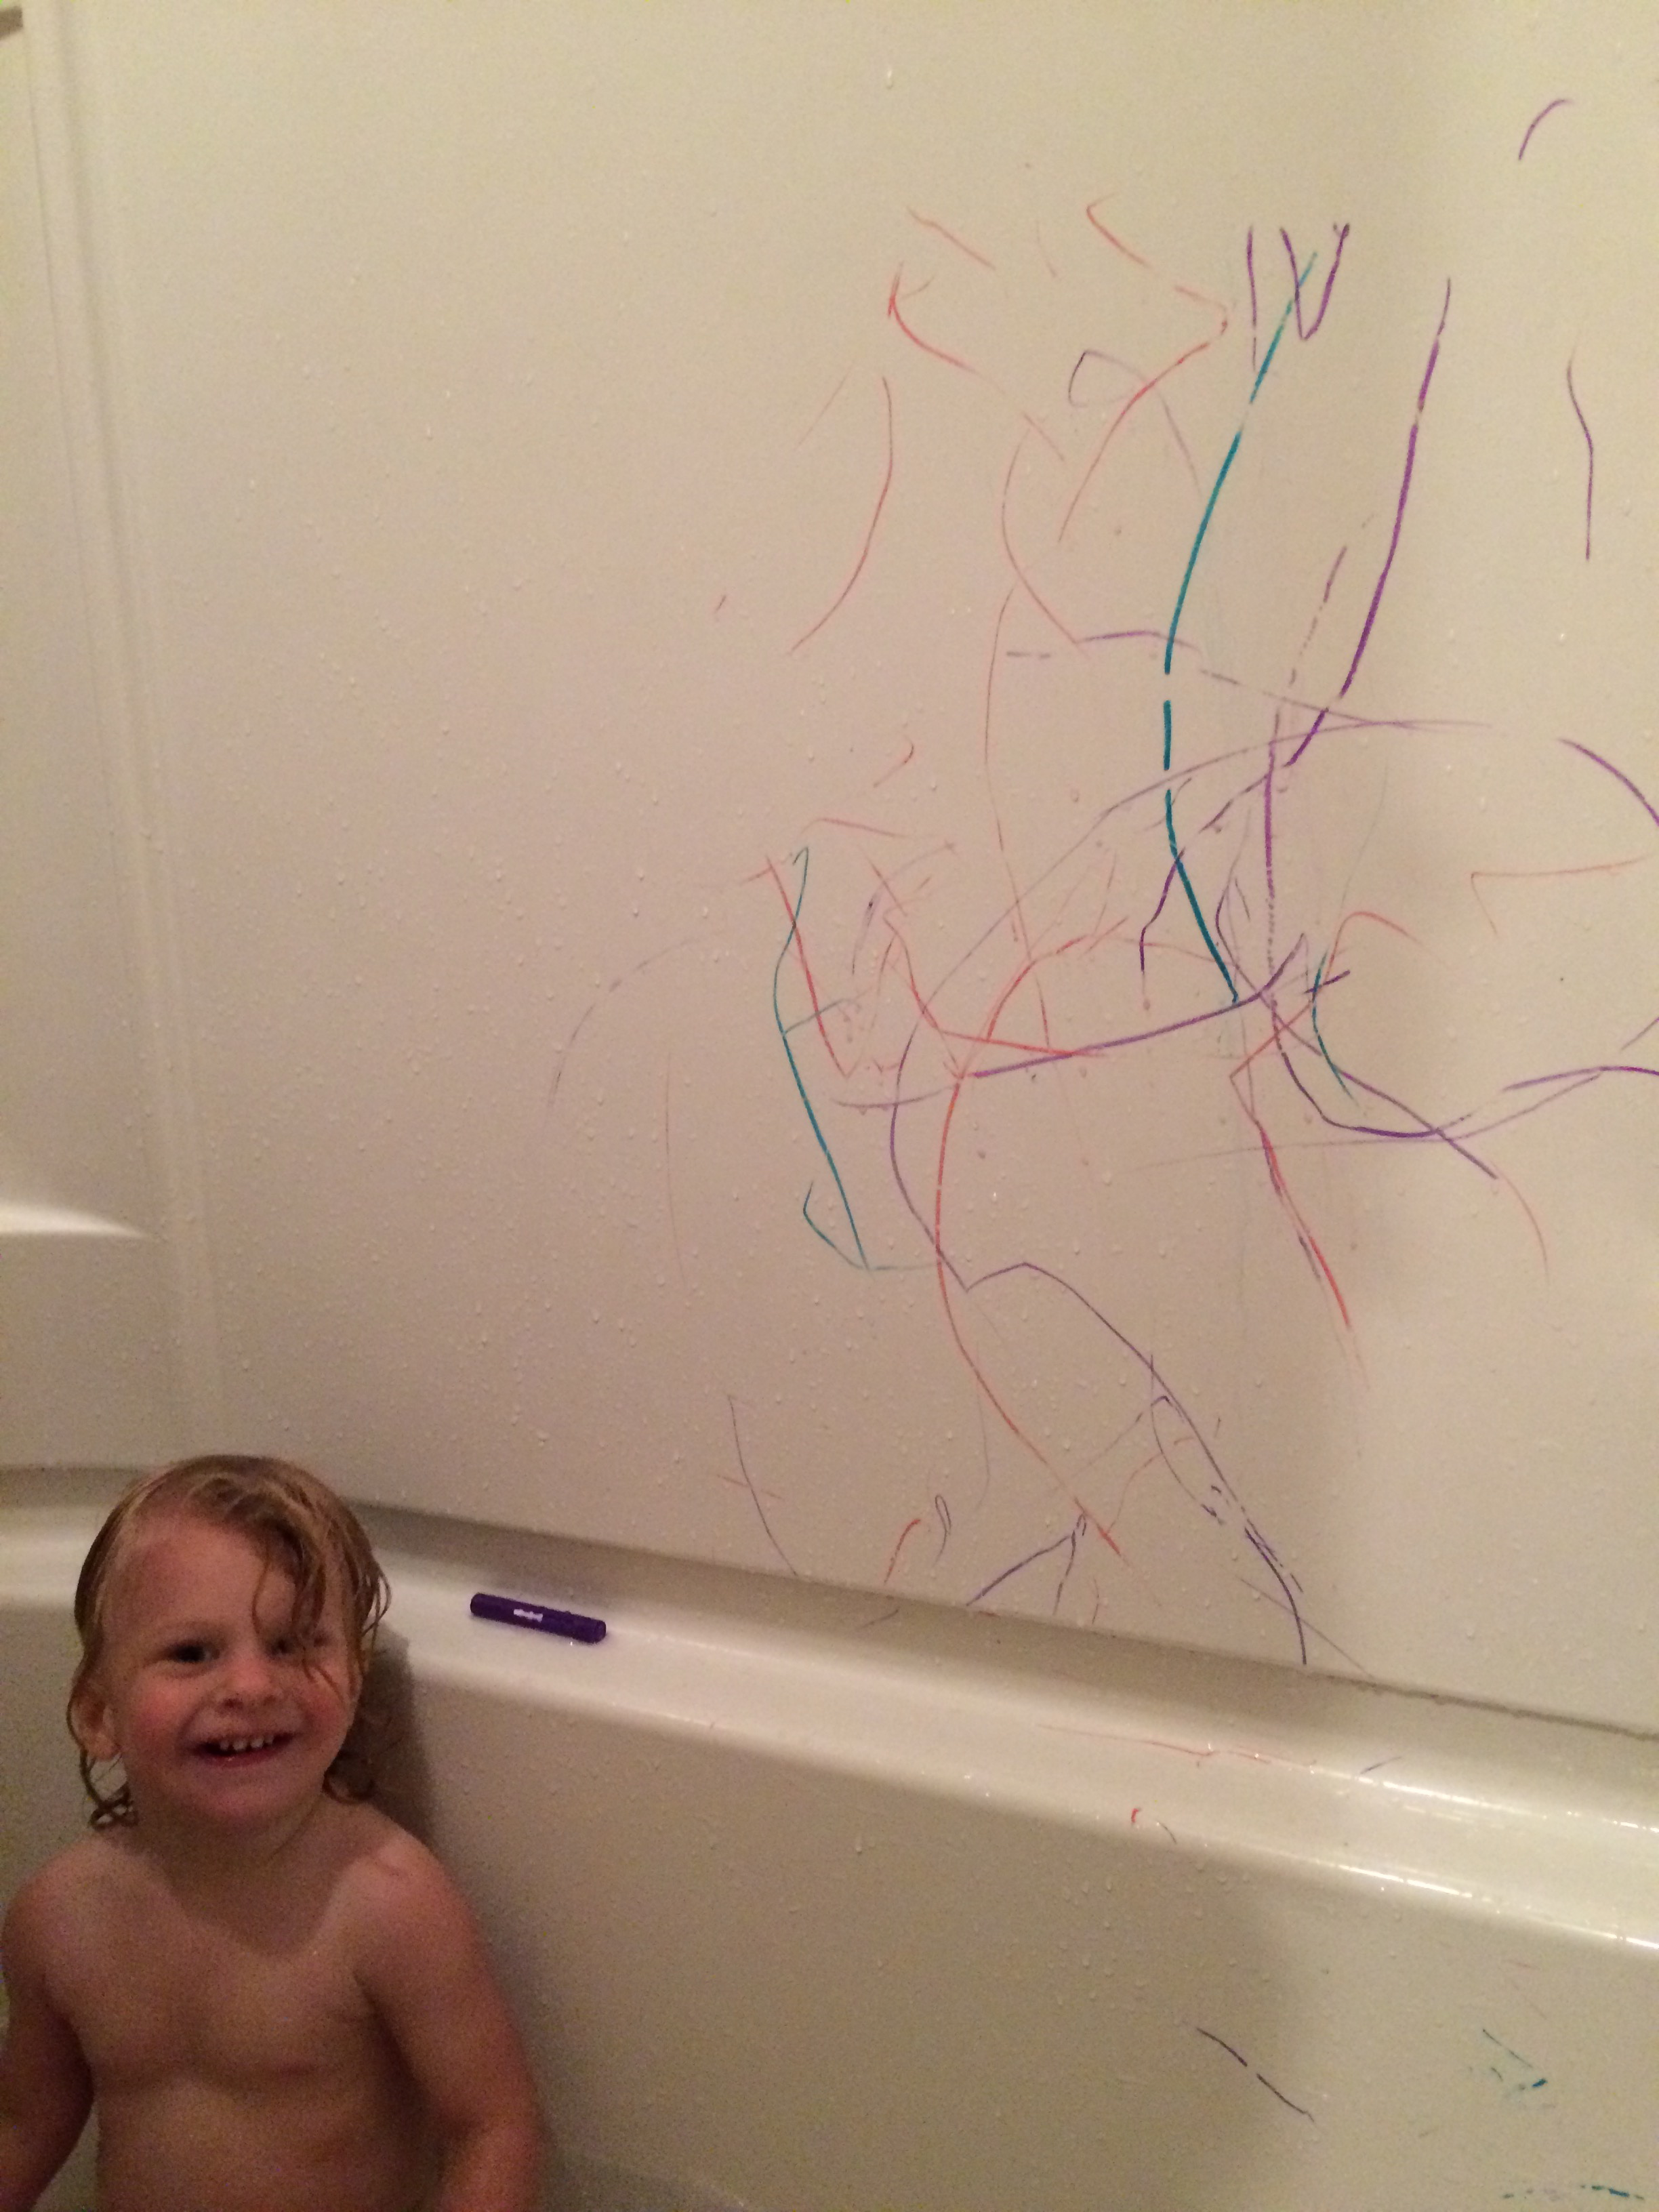 Whoever invented bath crayons is a genius!